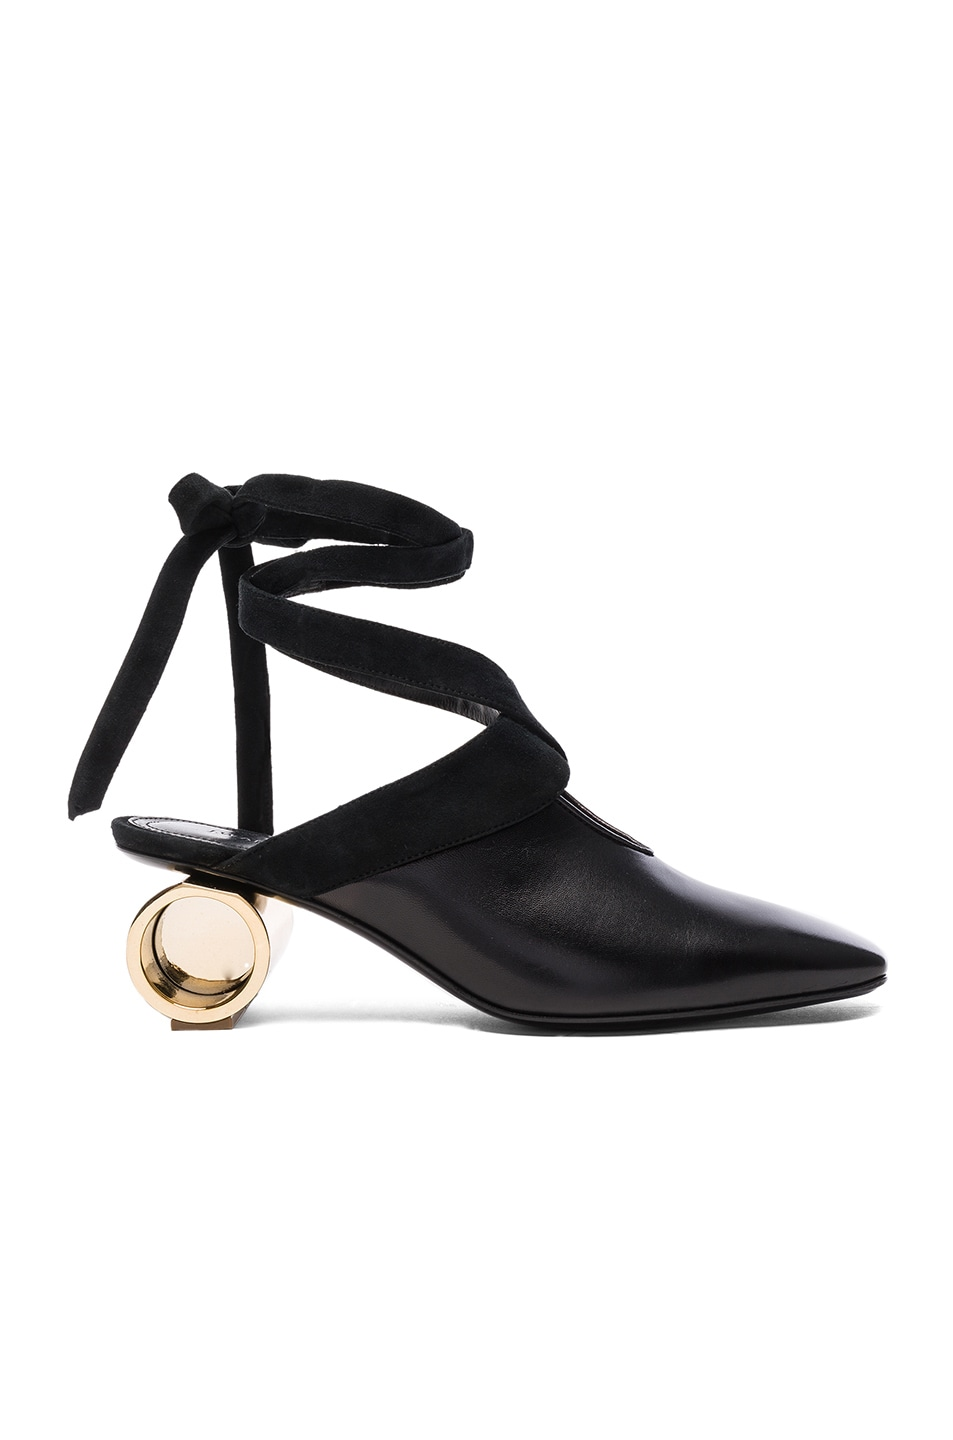 Jw Anderson - Cylinder Heel Leather Mules - Womens - Black